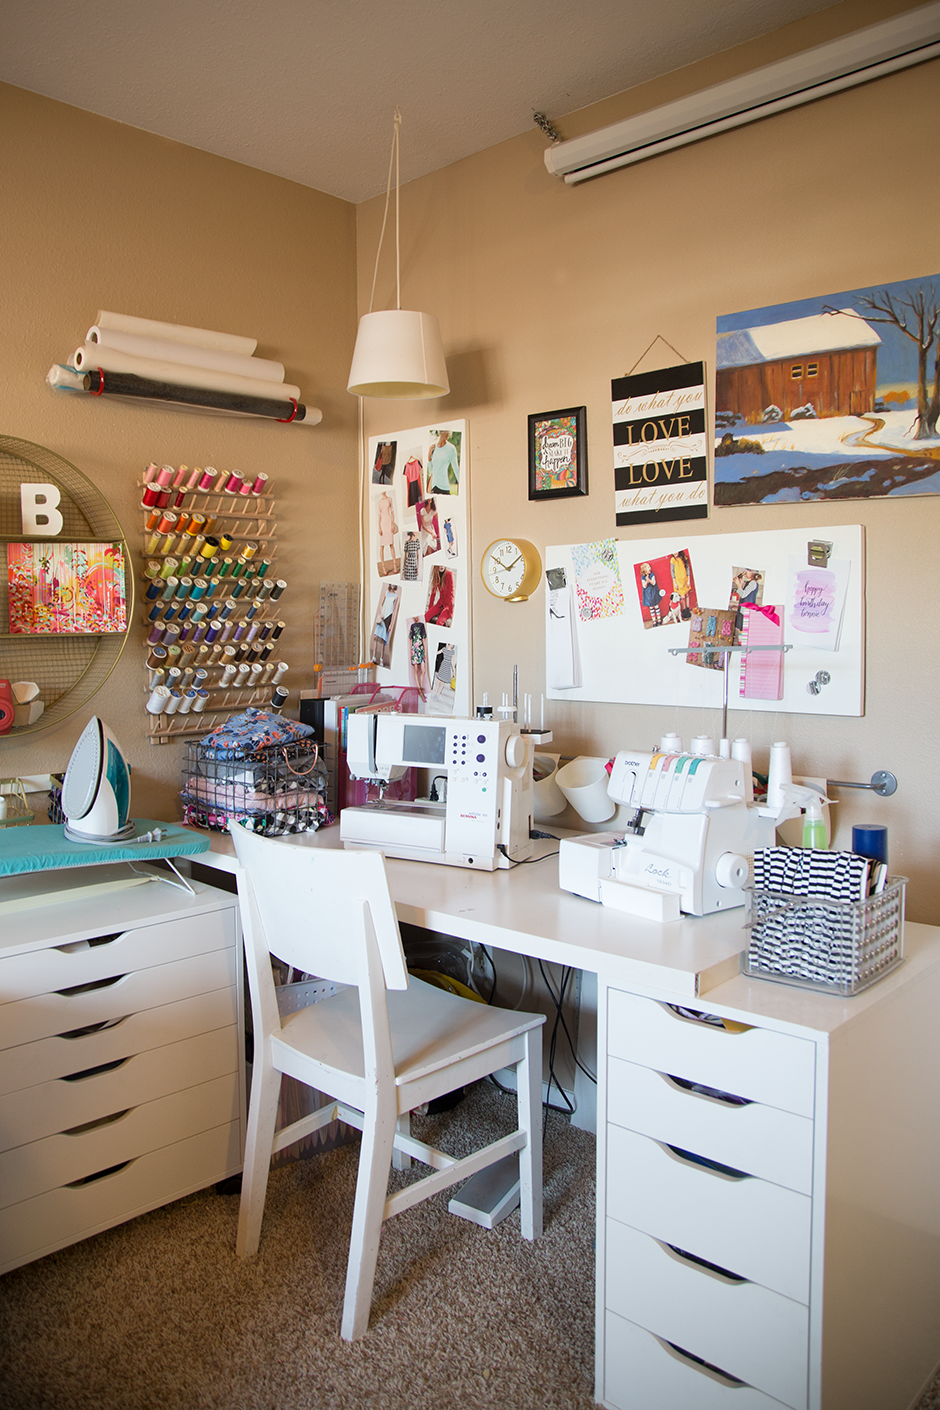 Tips for creating a sewing space in